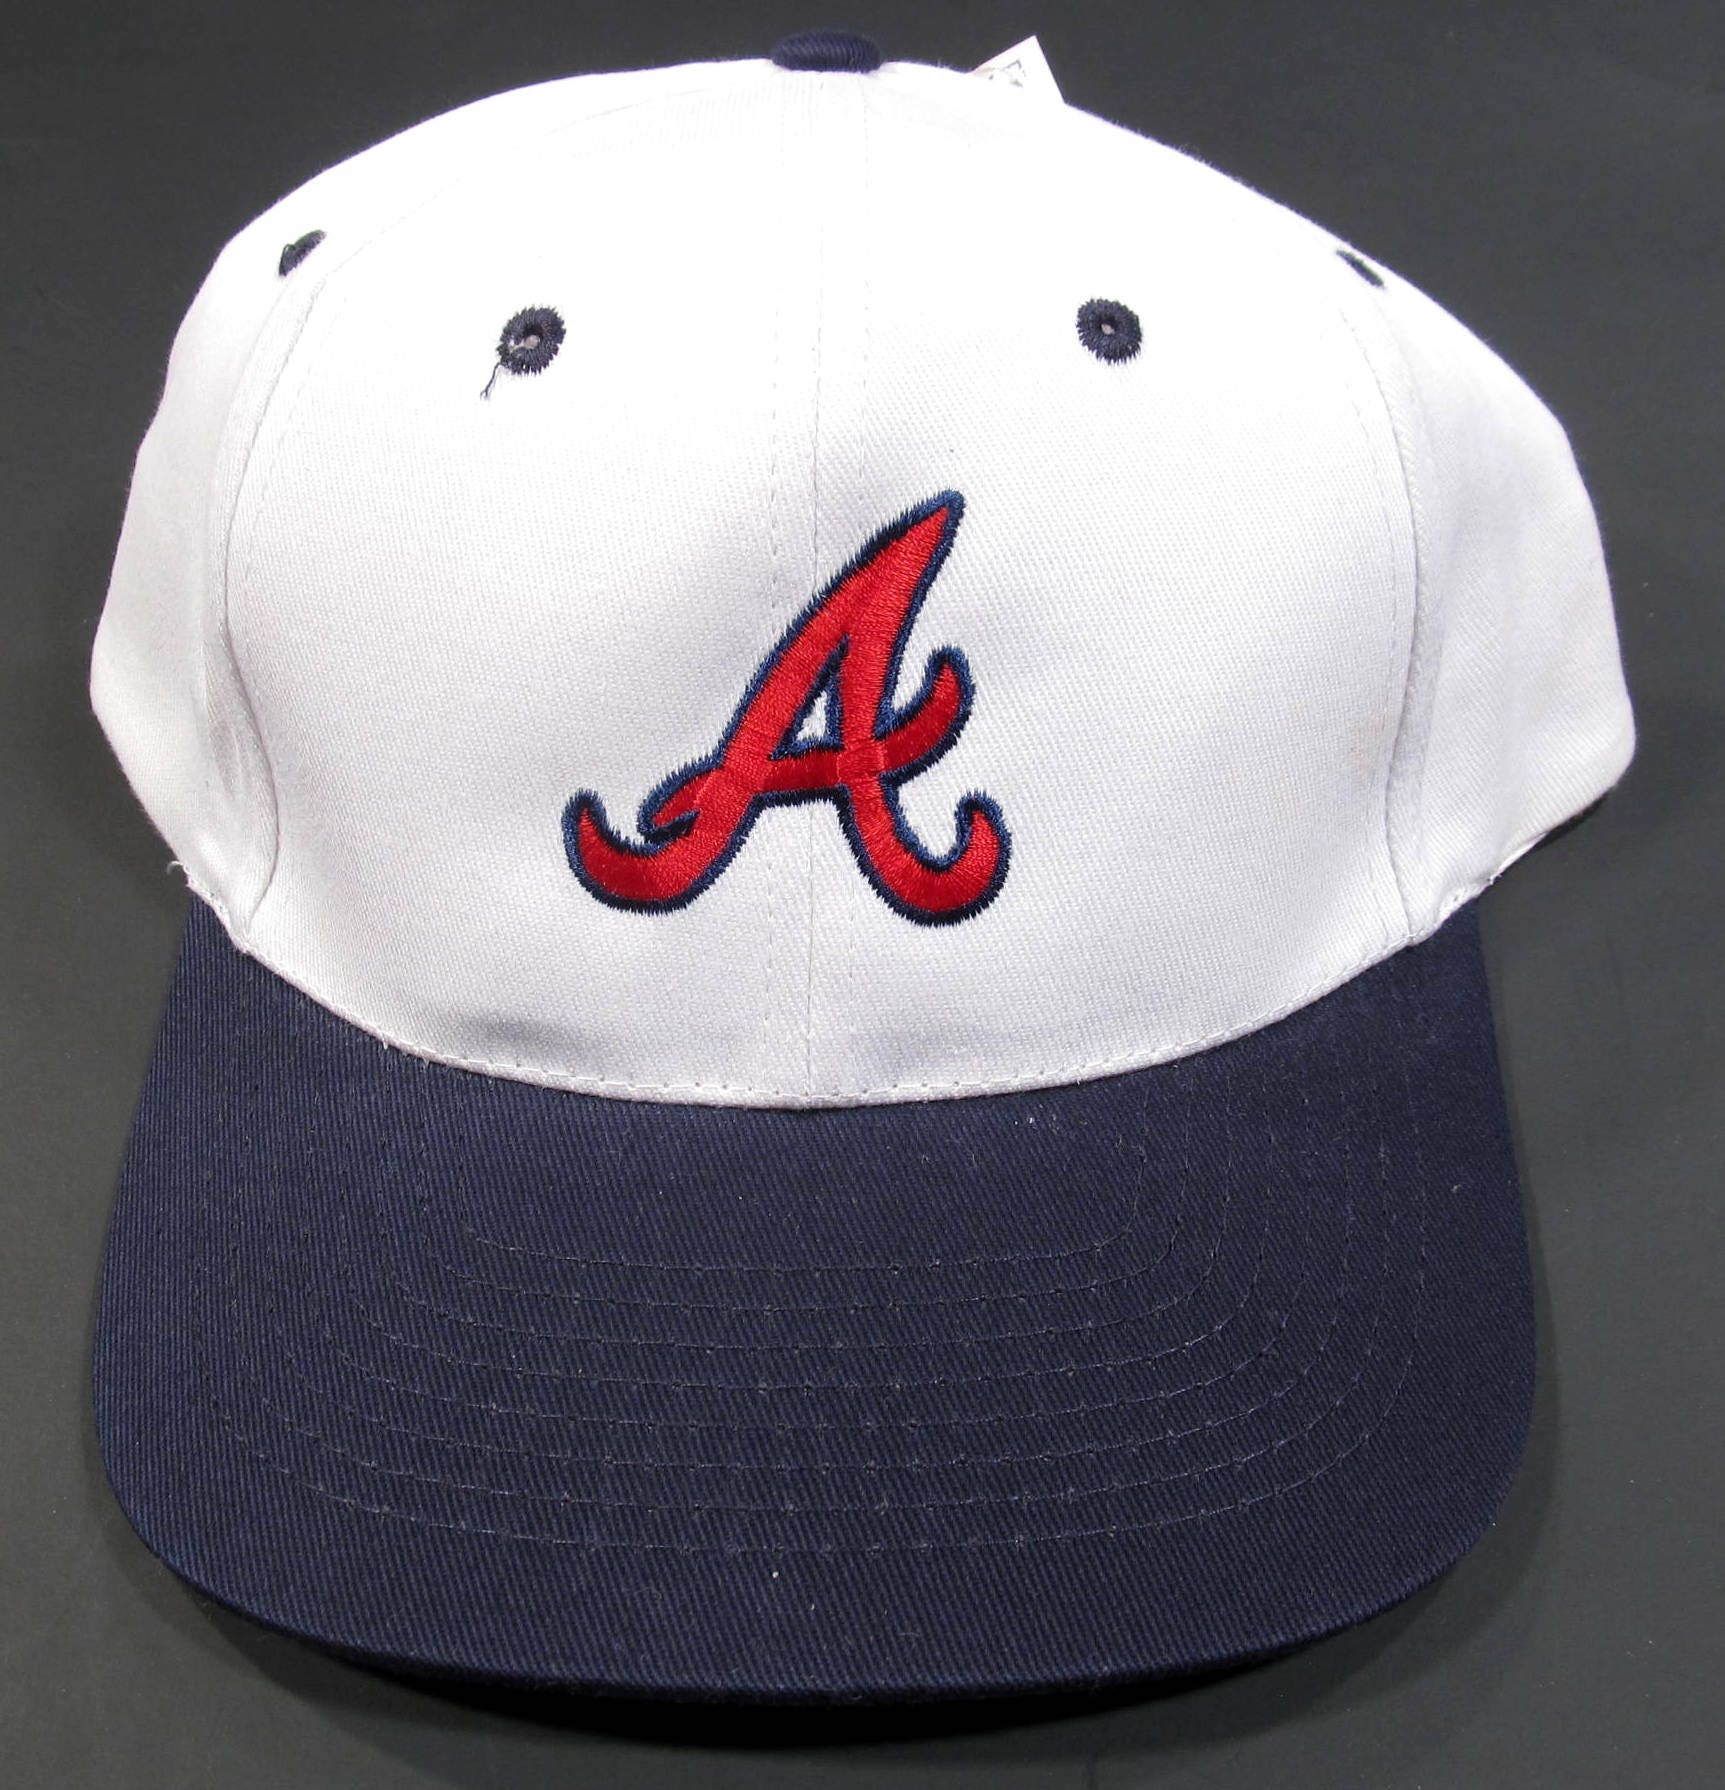 a7449fbe8a83a ... sale deadstock 1990s atlanta braves snapback baseball hat vintage new  with tags snap back db4f0 27d28